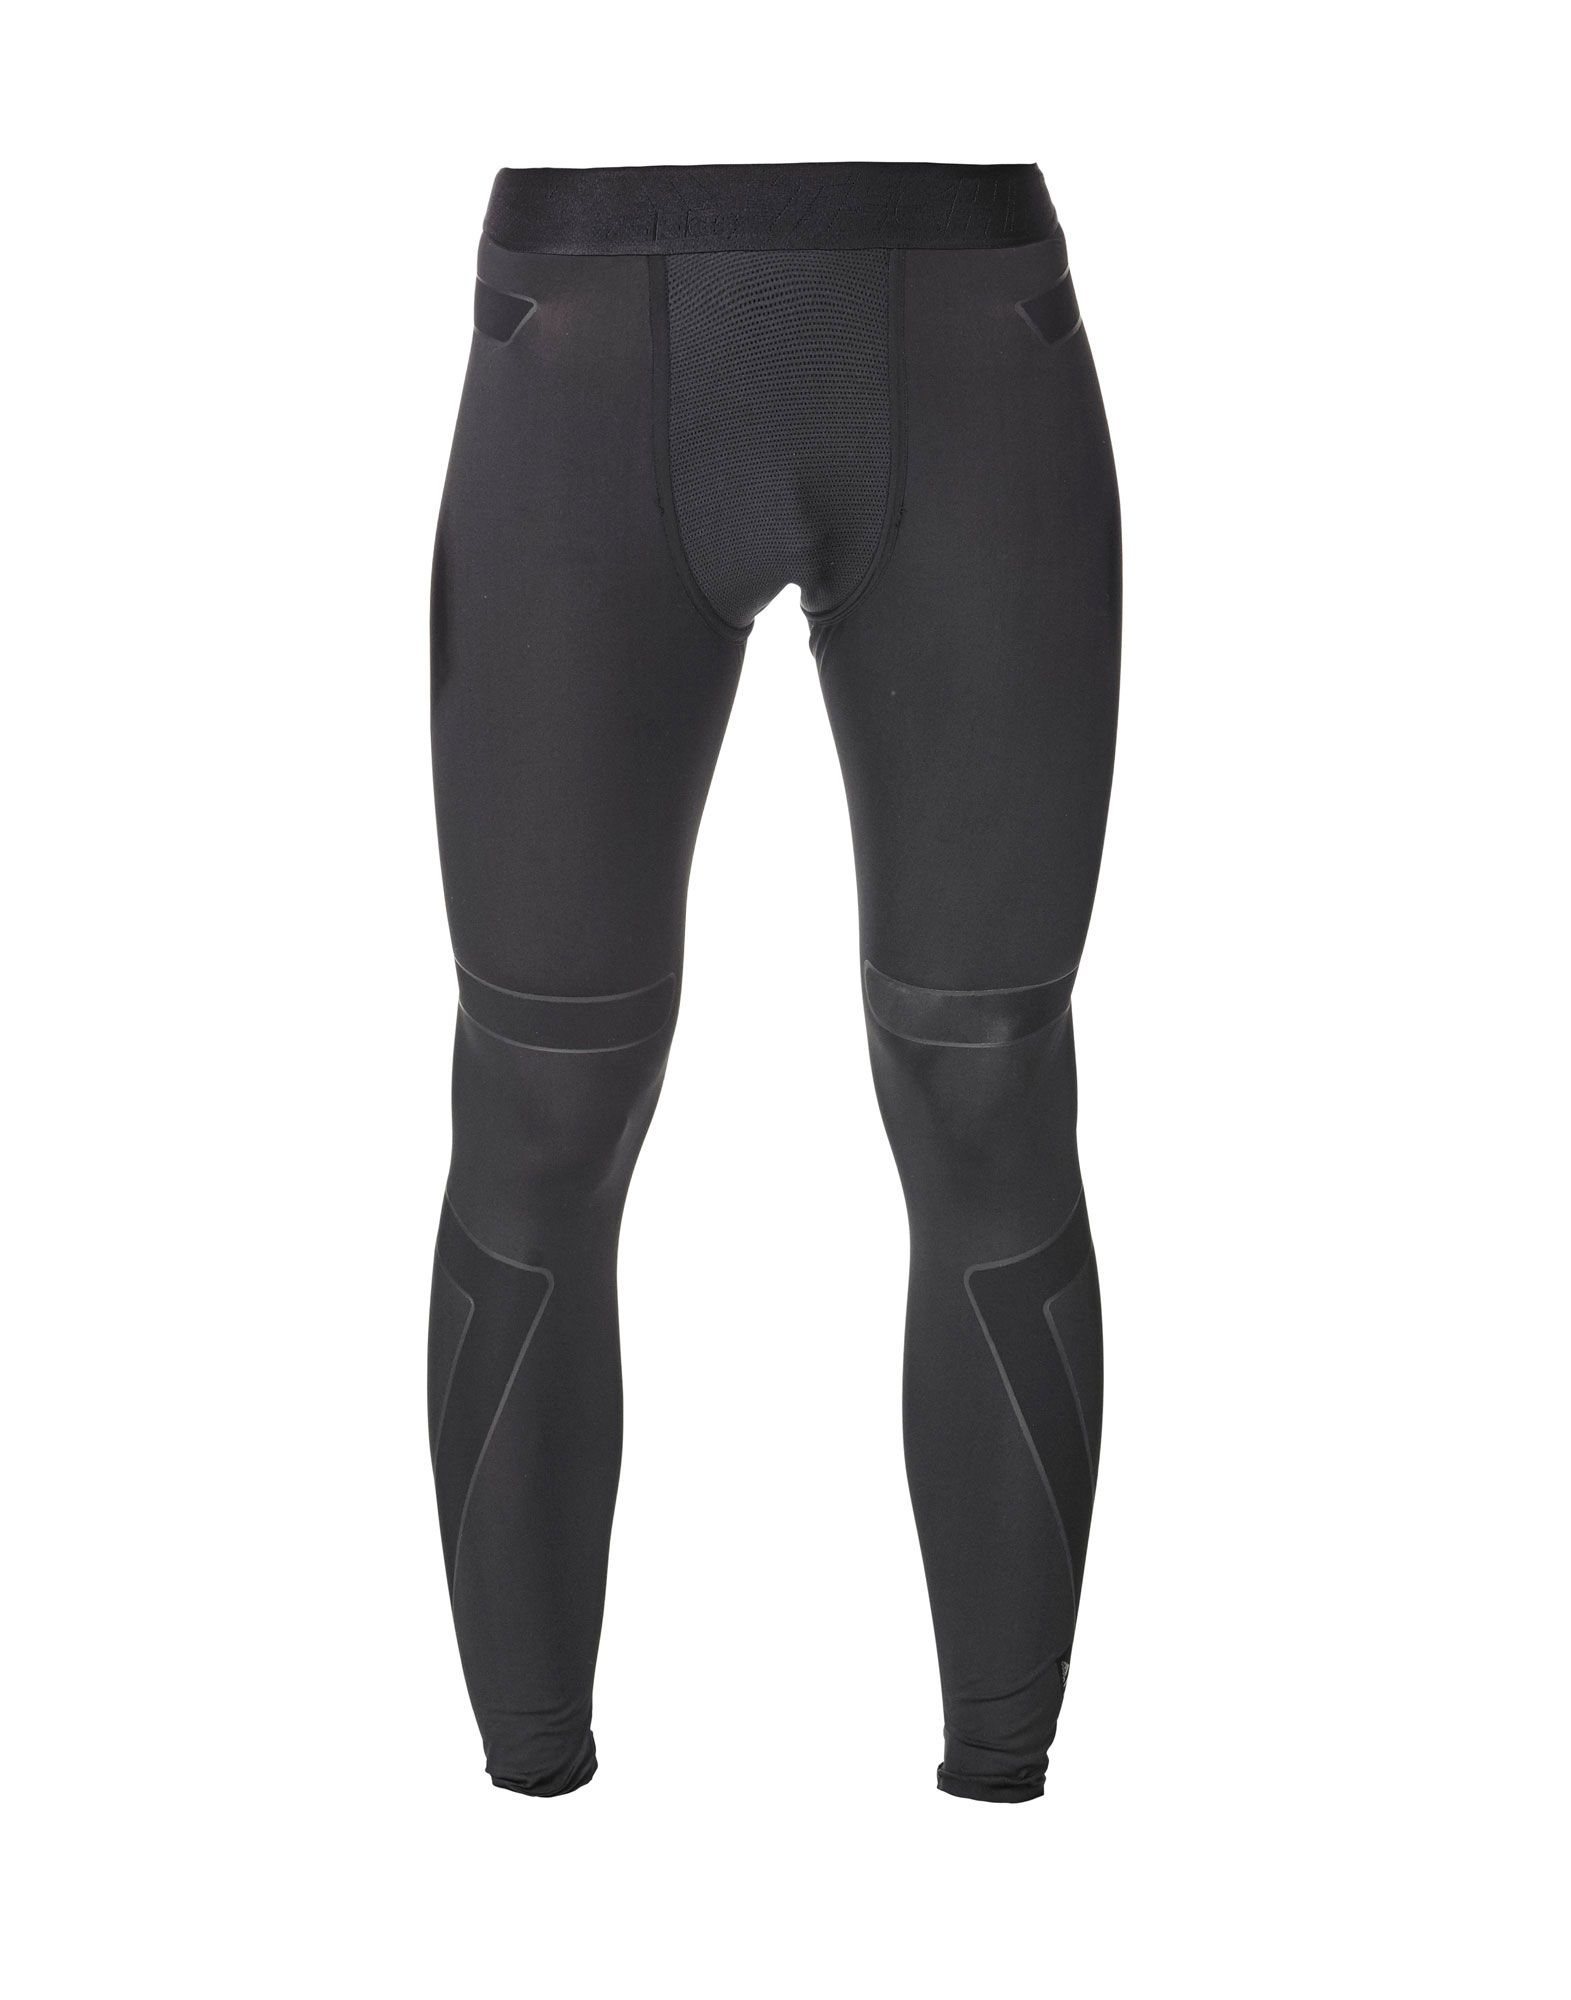 ... Y-3 SPORT TECHFIT LONG TIGHT PANTS man Y-3 adidas ...